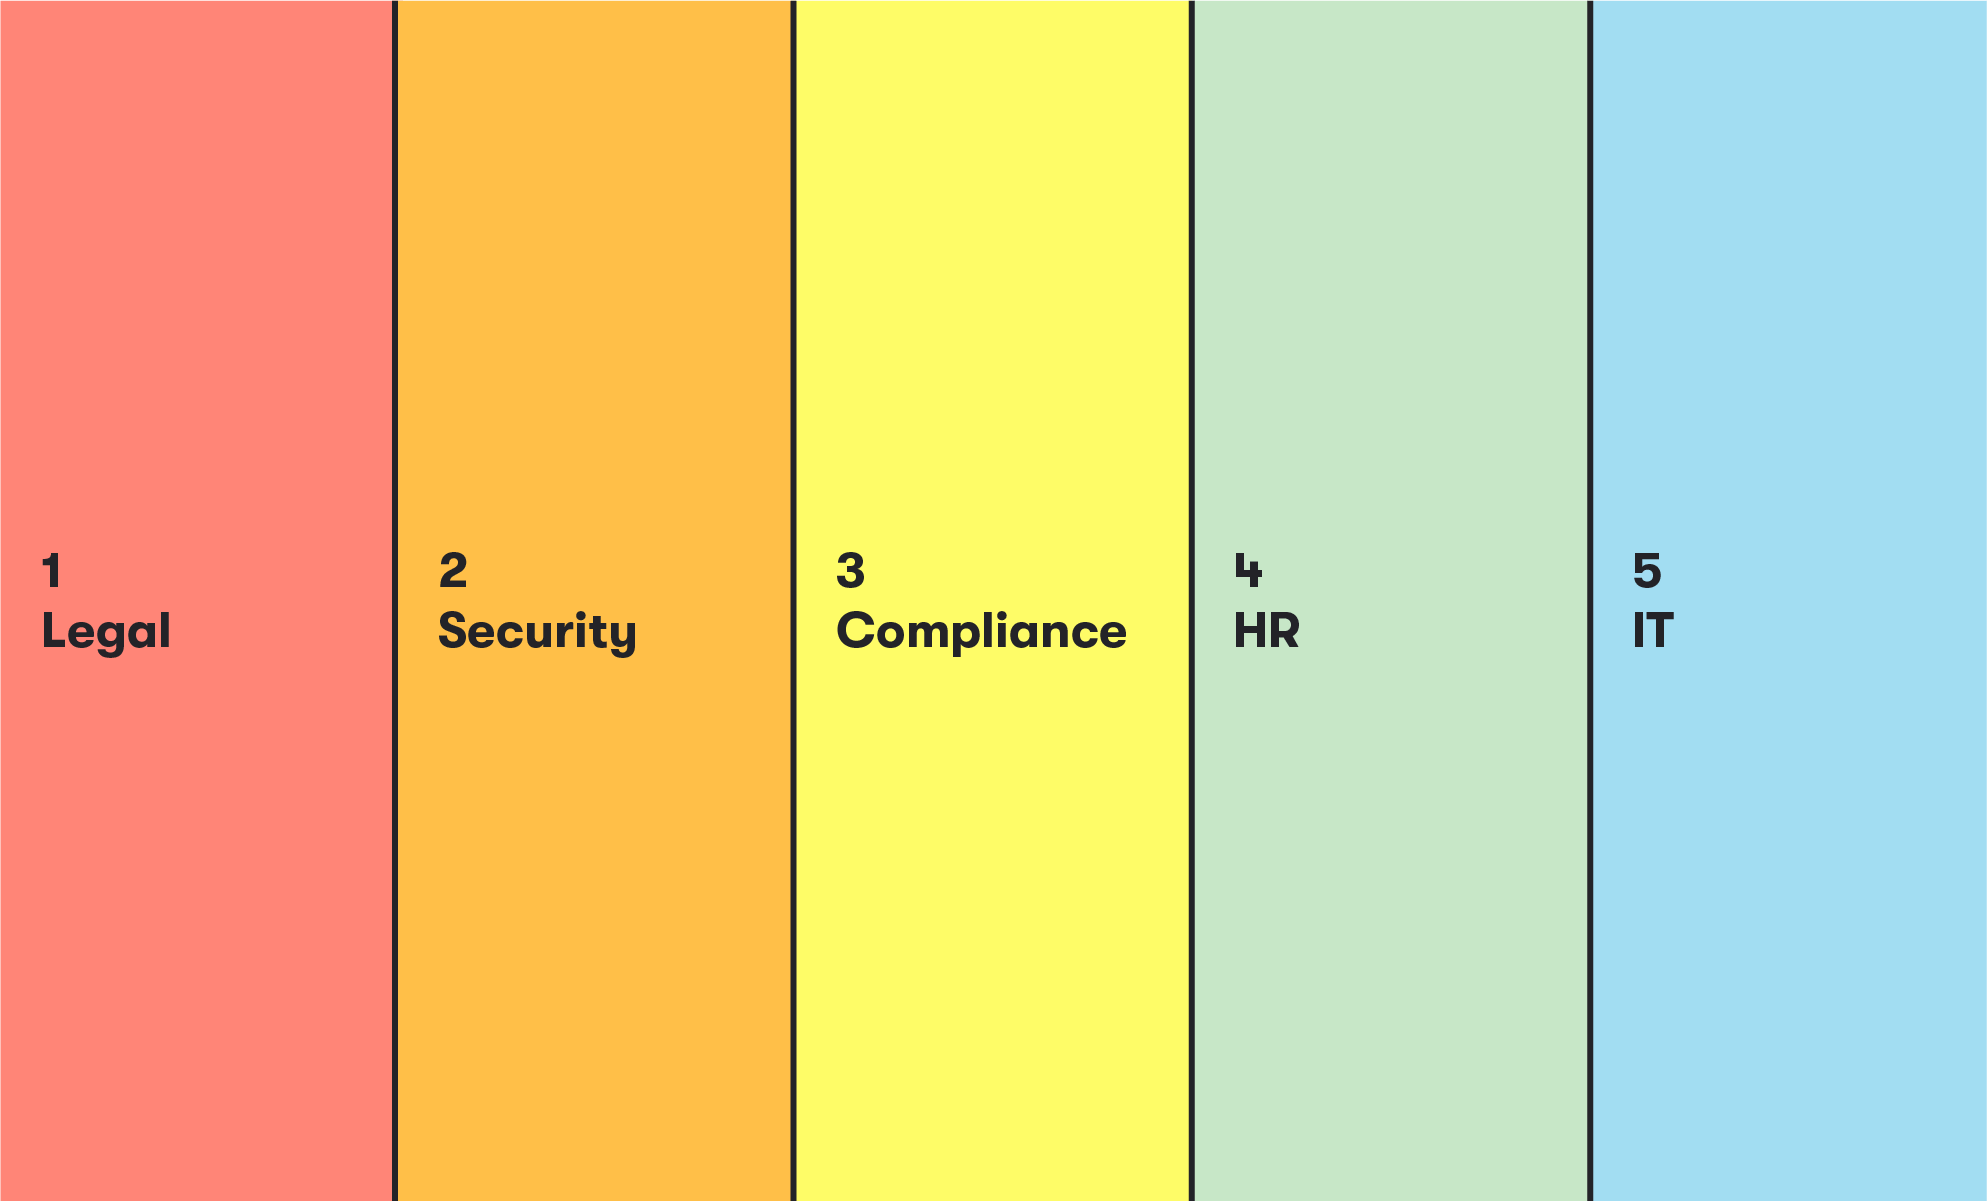 Colorful graphic showing red, orange, yellow, green, and blue vertical bars representing the legal, security, compliance, HR, and IT teams at most organizations (BrainStorm, Inc., 9/2021)